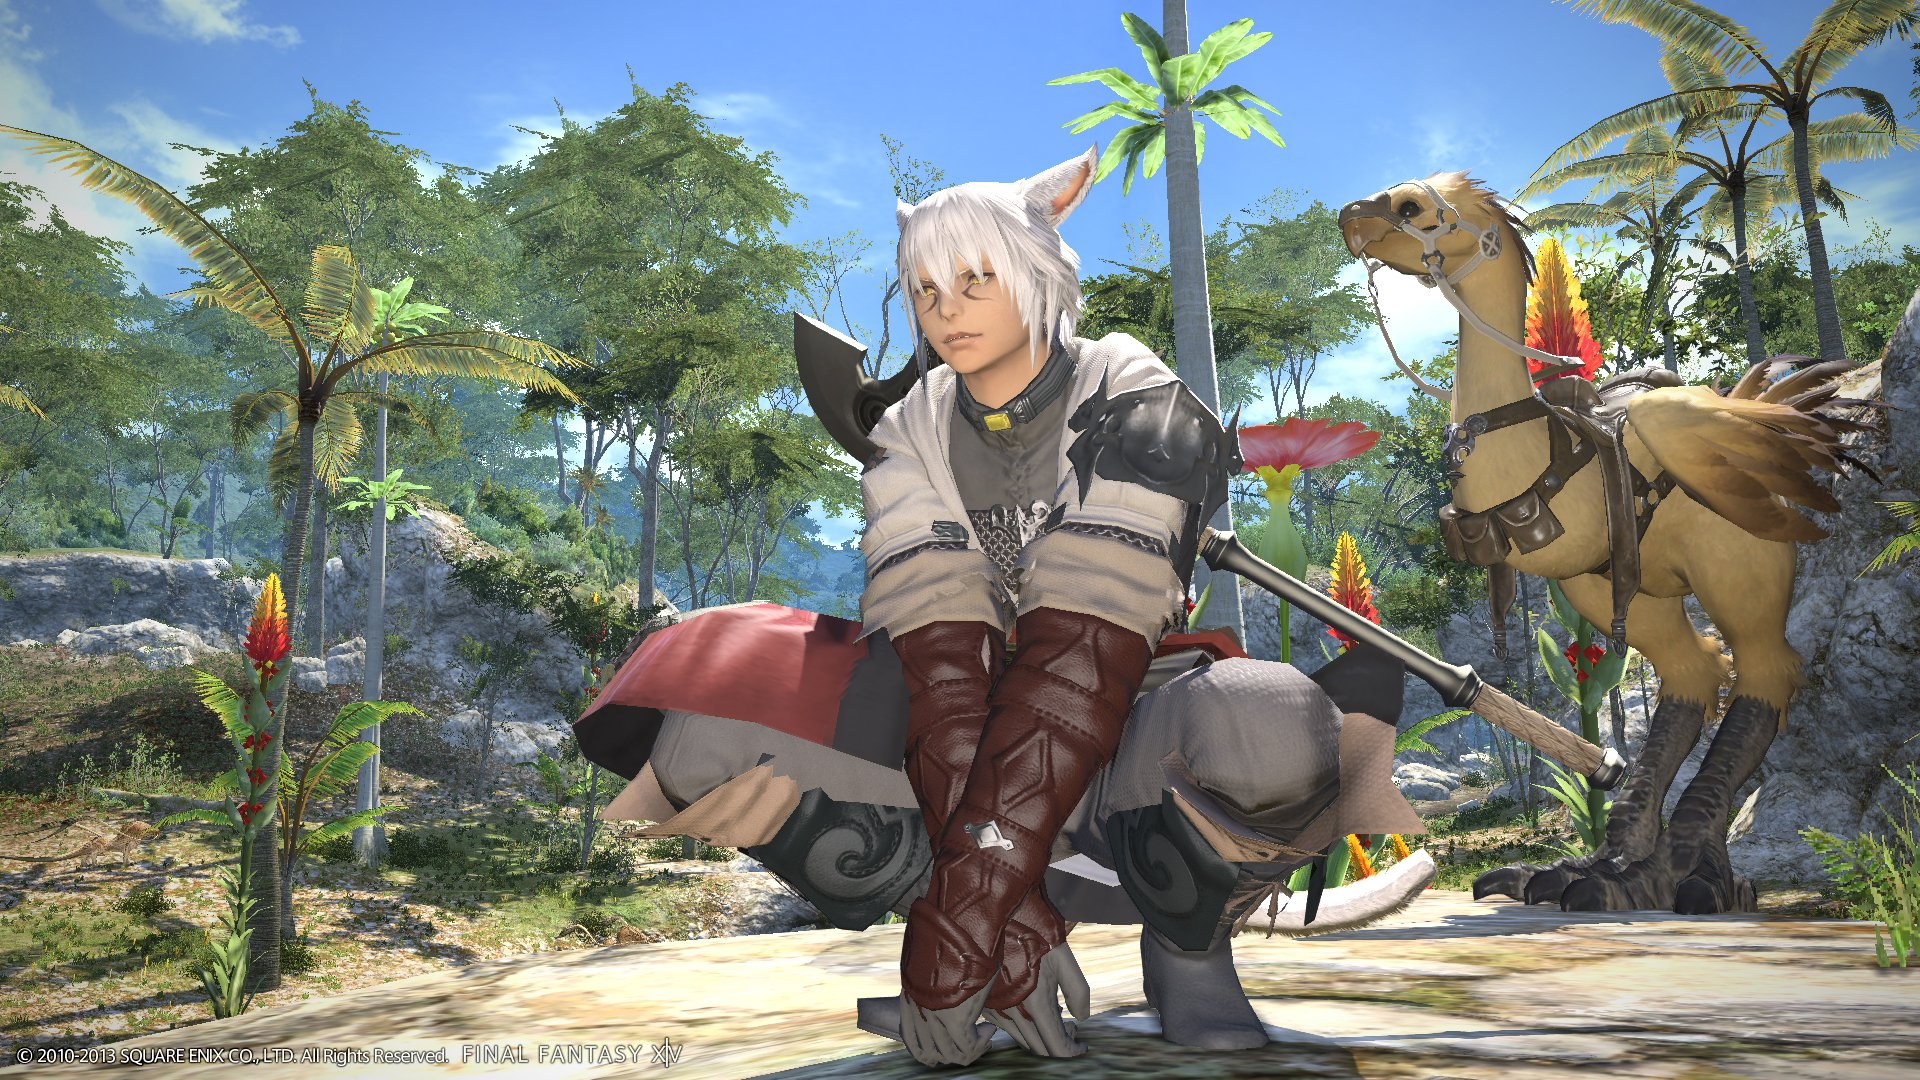 Final Fantasy 14 companion app now available on Android